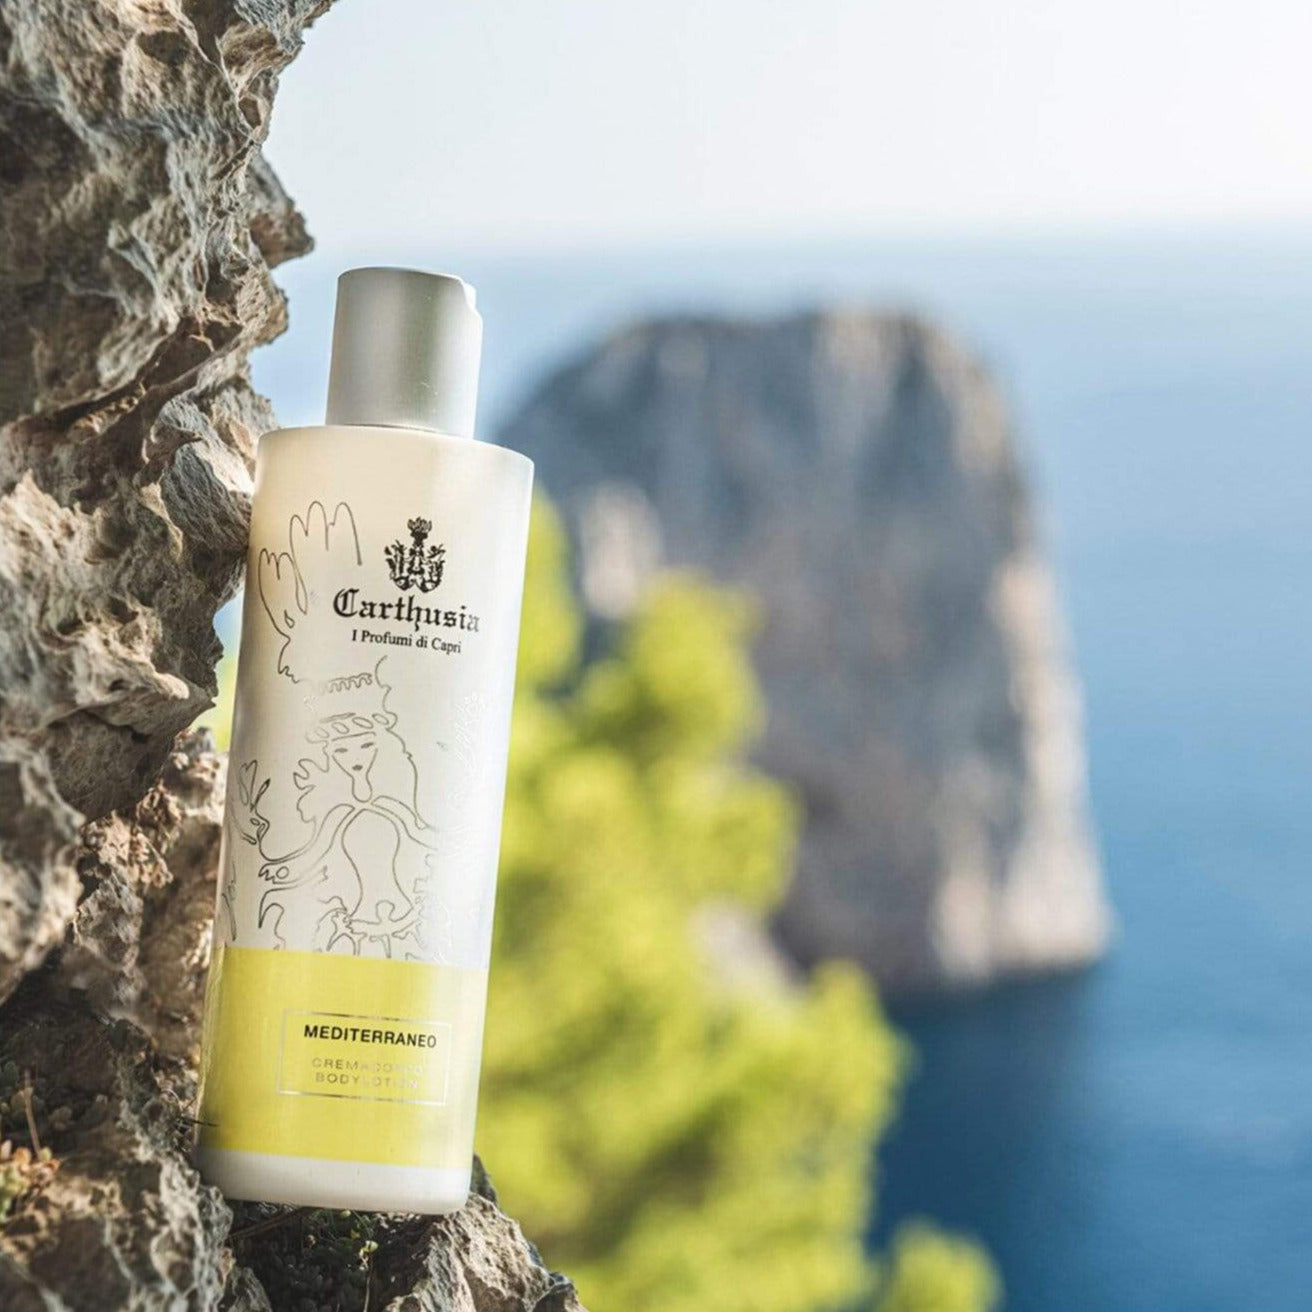 CARTHUSIA Mediterraneo Body Lotion